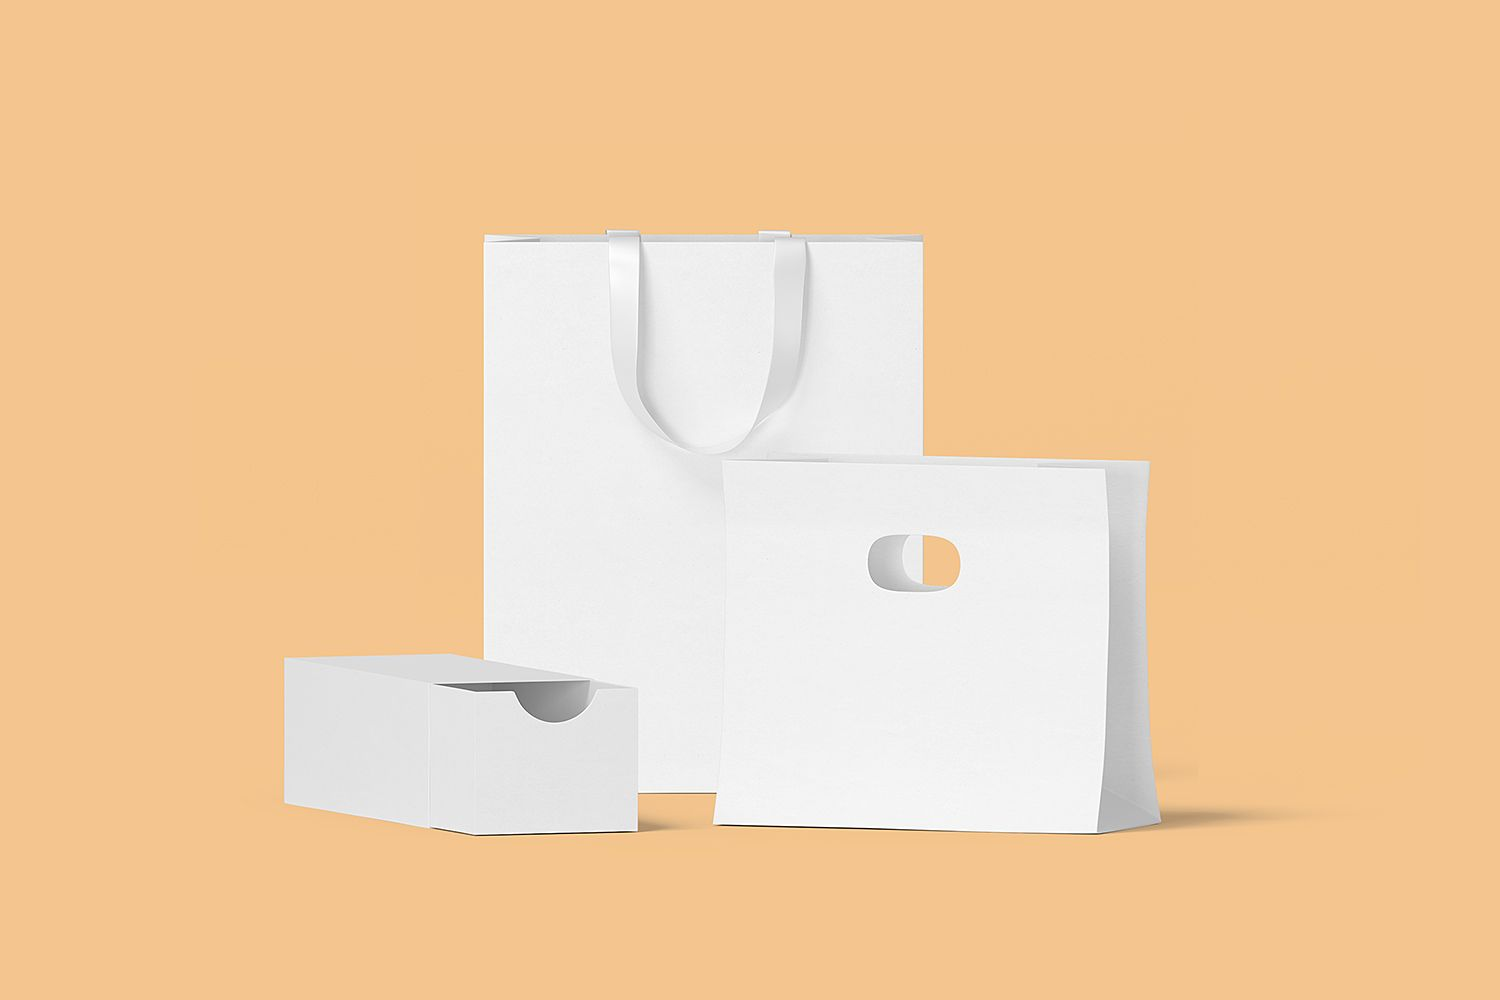 Download Box And Bag Scene Creator Mockup To Showcase Your Shopping Packaging Design In A Photorealistic Look Psd File Consists Of Sma Scene Creator Free Mockup Mockup